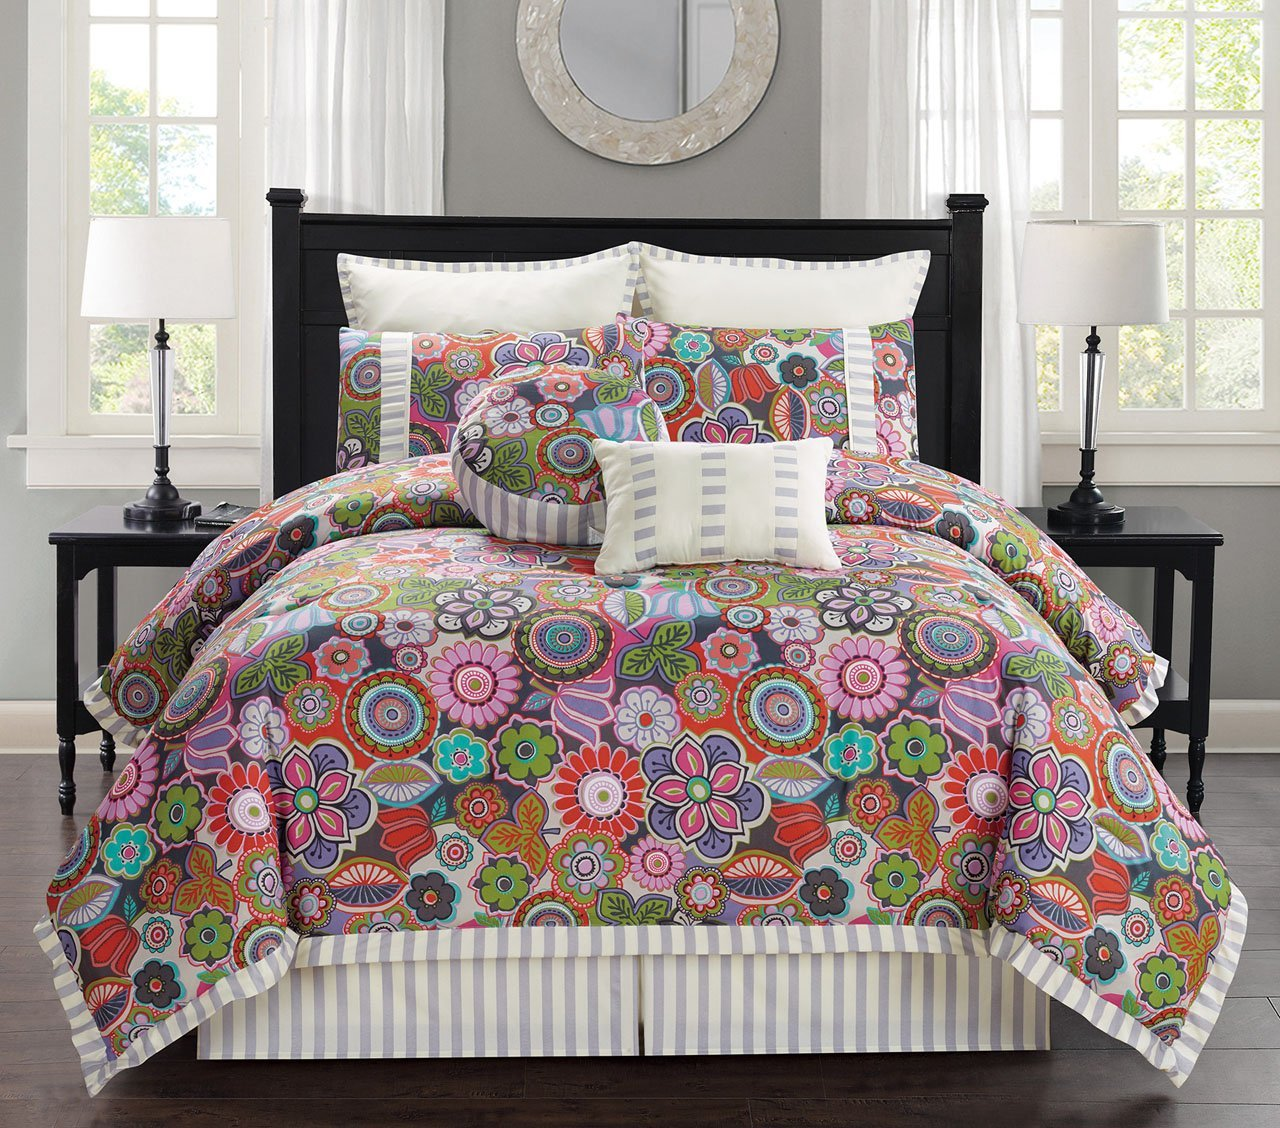 8 Piece King Palermo Floral Comforter Set